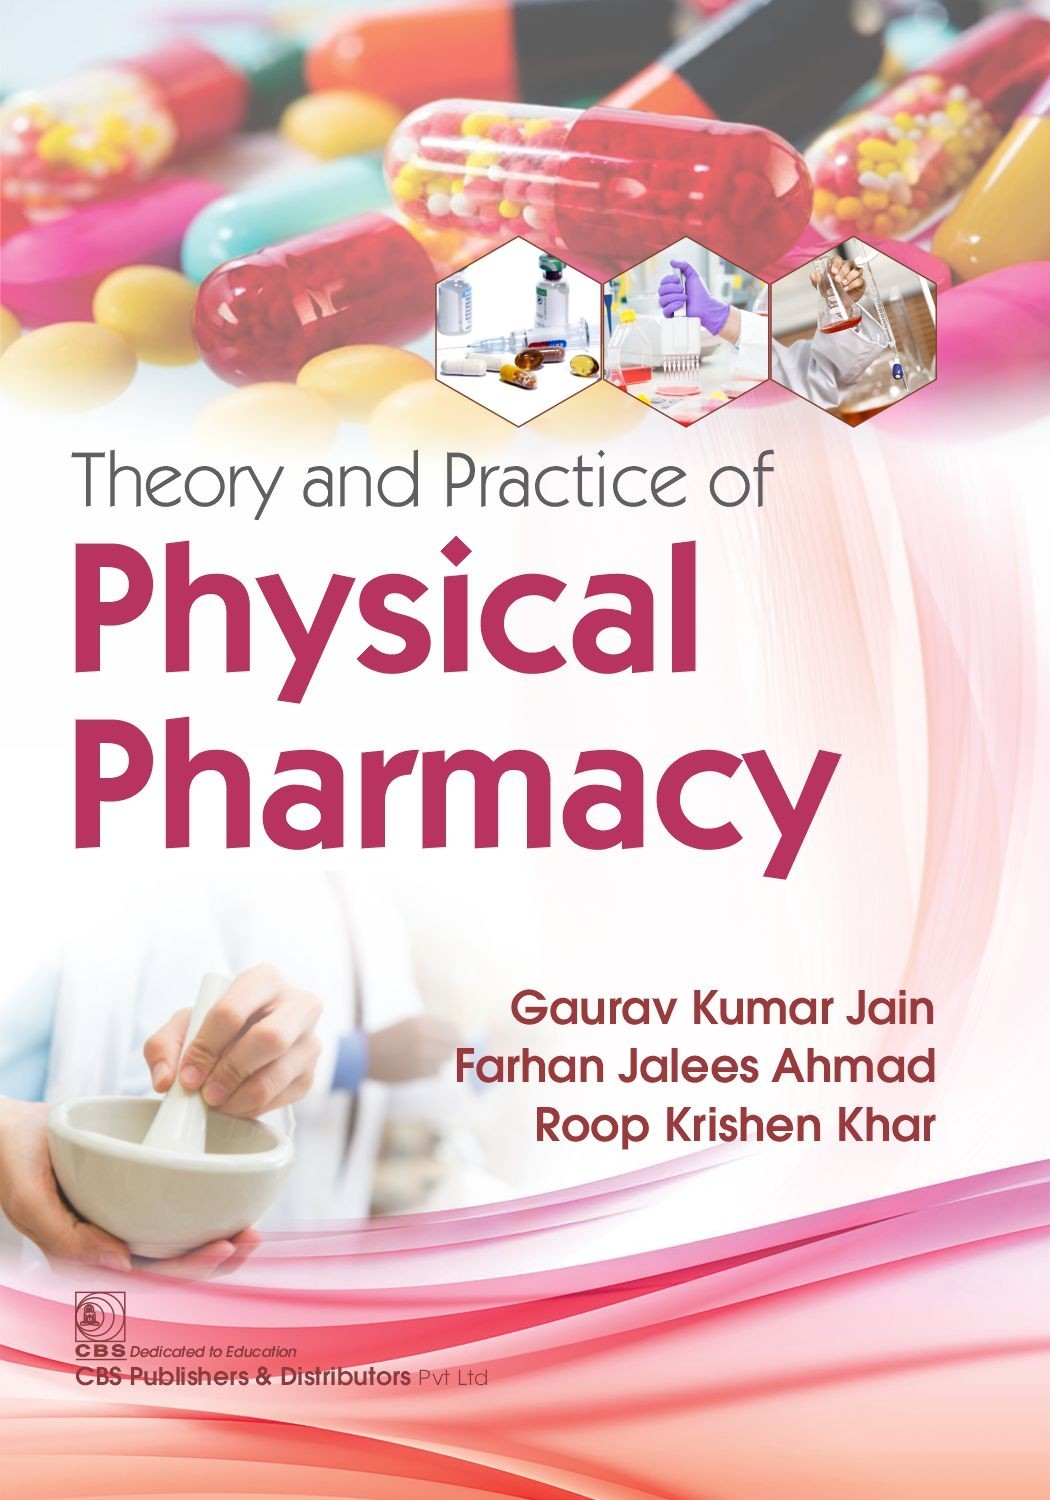 Theory and Practice of Physical Pharmacy (CBS Reprint)